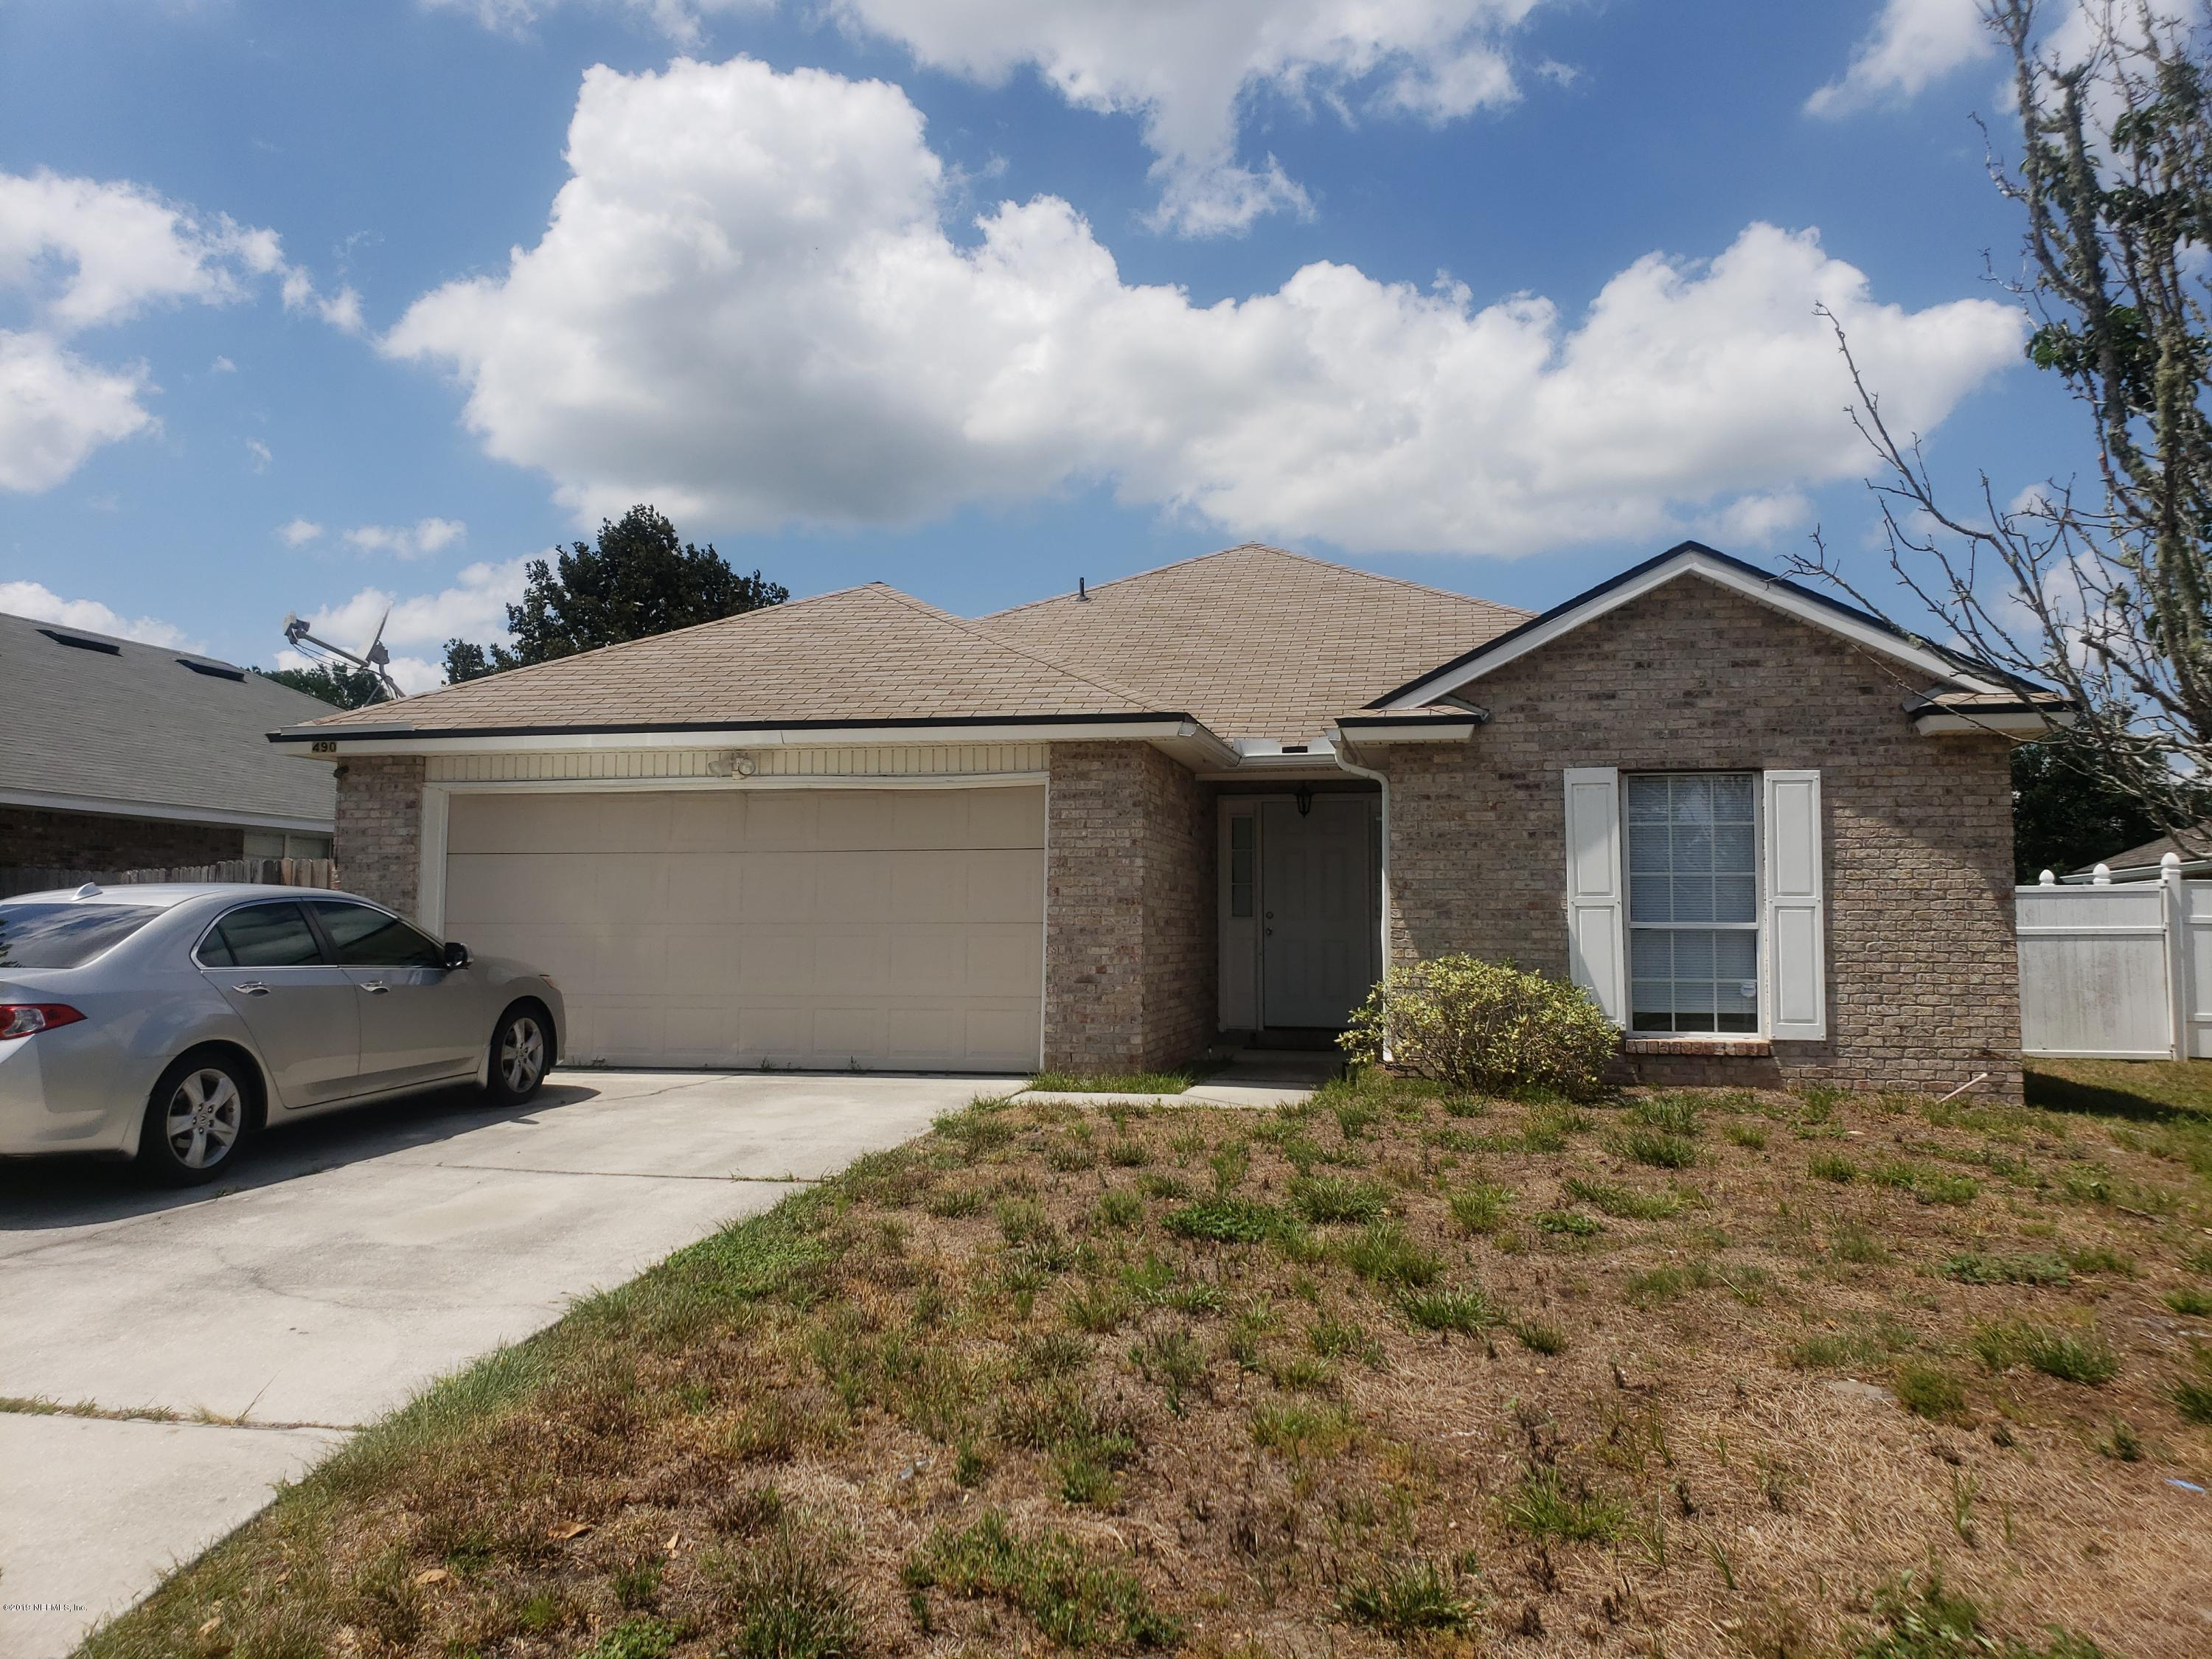 Photo of 490 HILLSIDE, ORANGE PARK, FL 32073